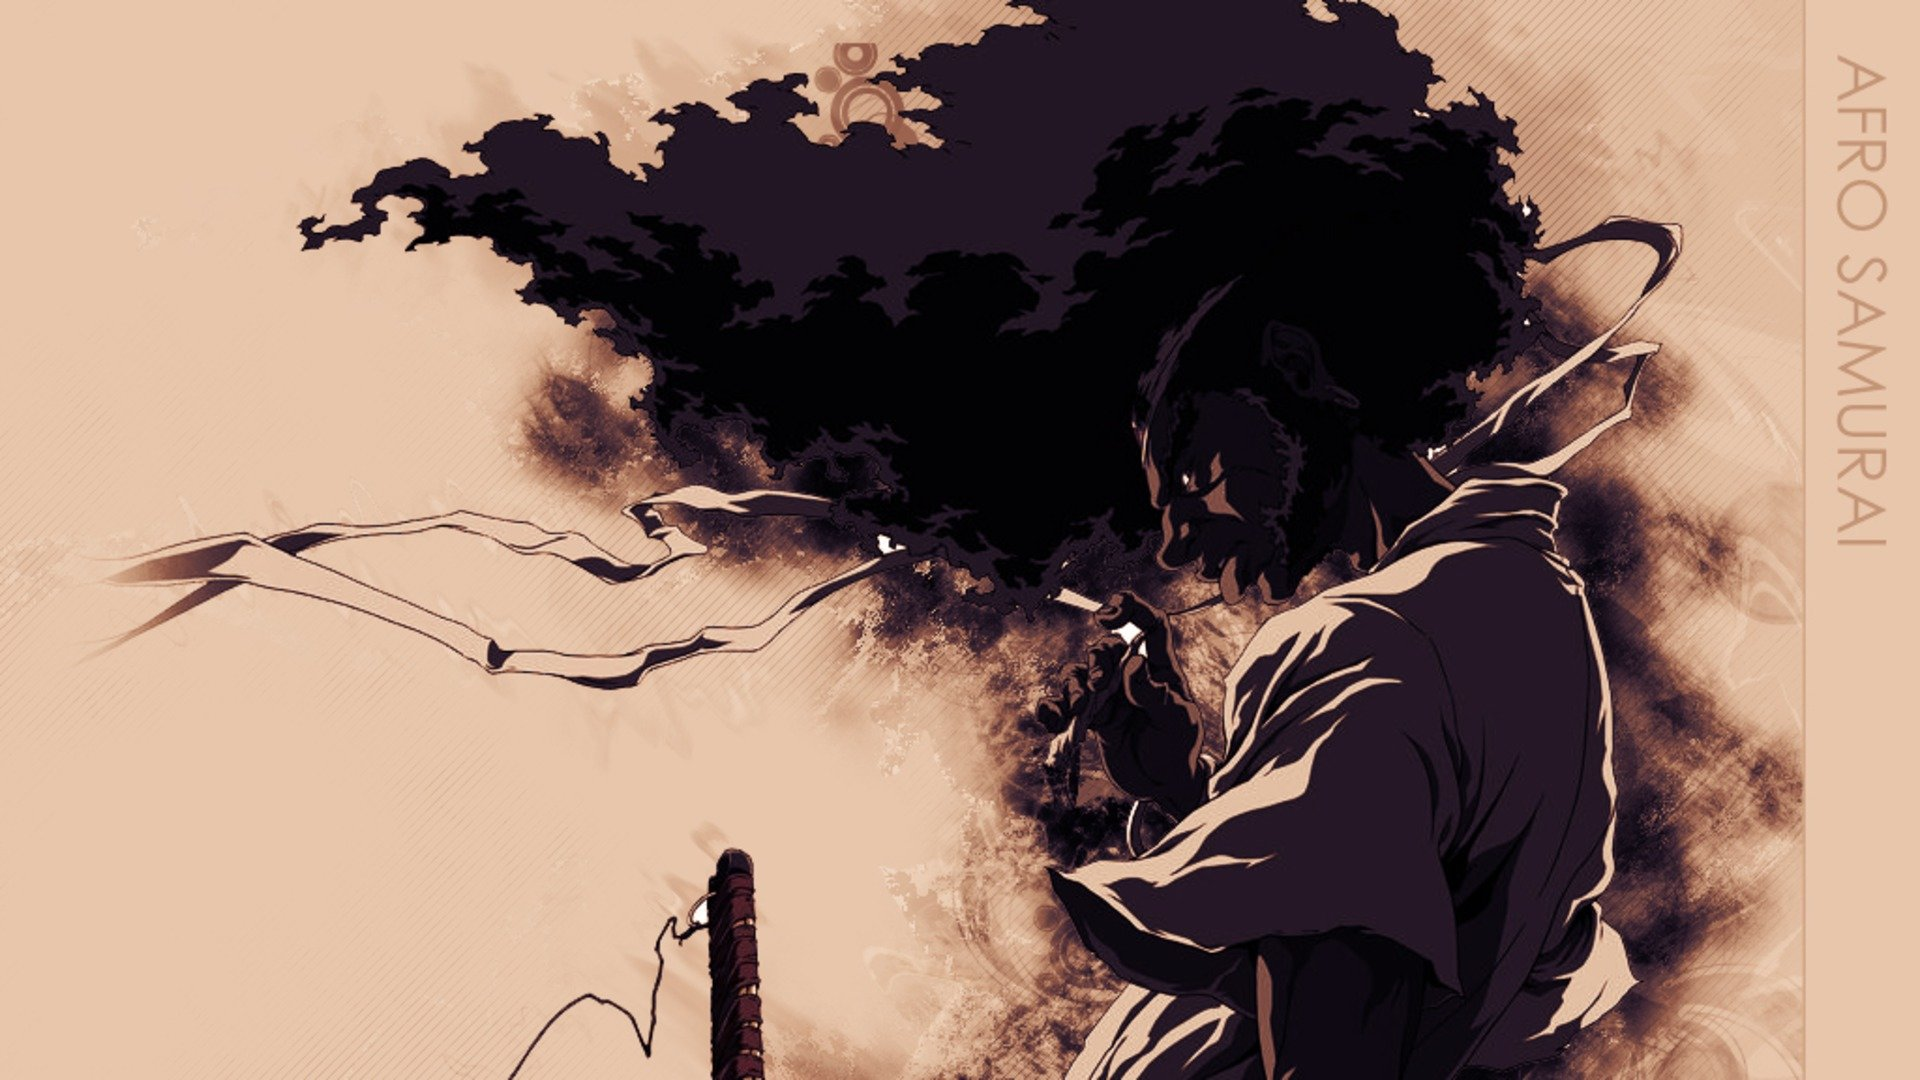 Download hd 1920x1080 Afro Samurai PC wallpaper ID:329133 for free